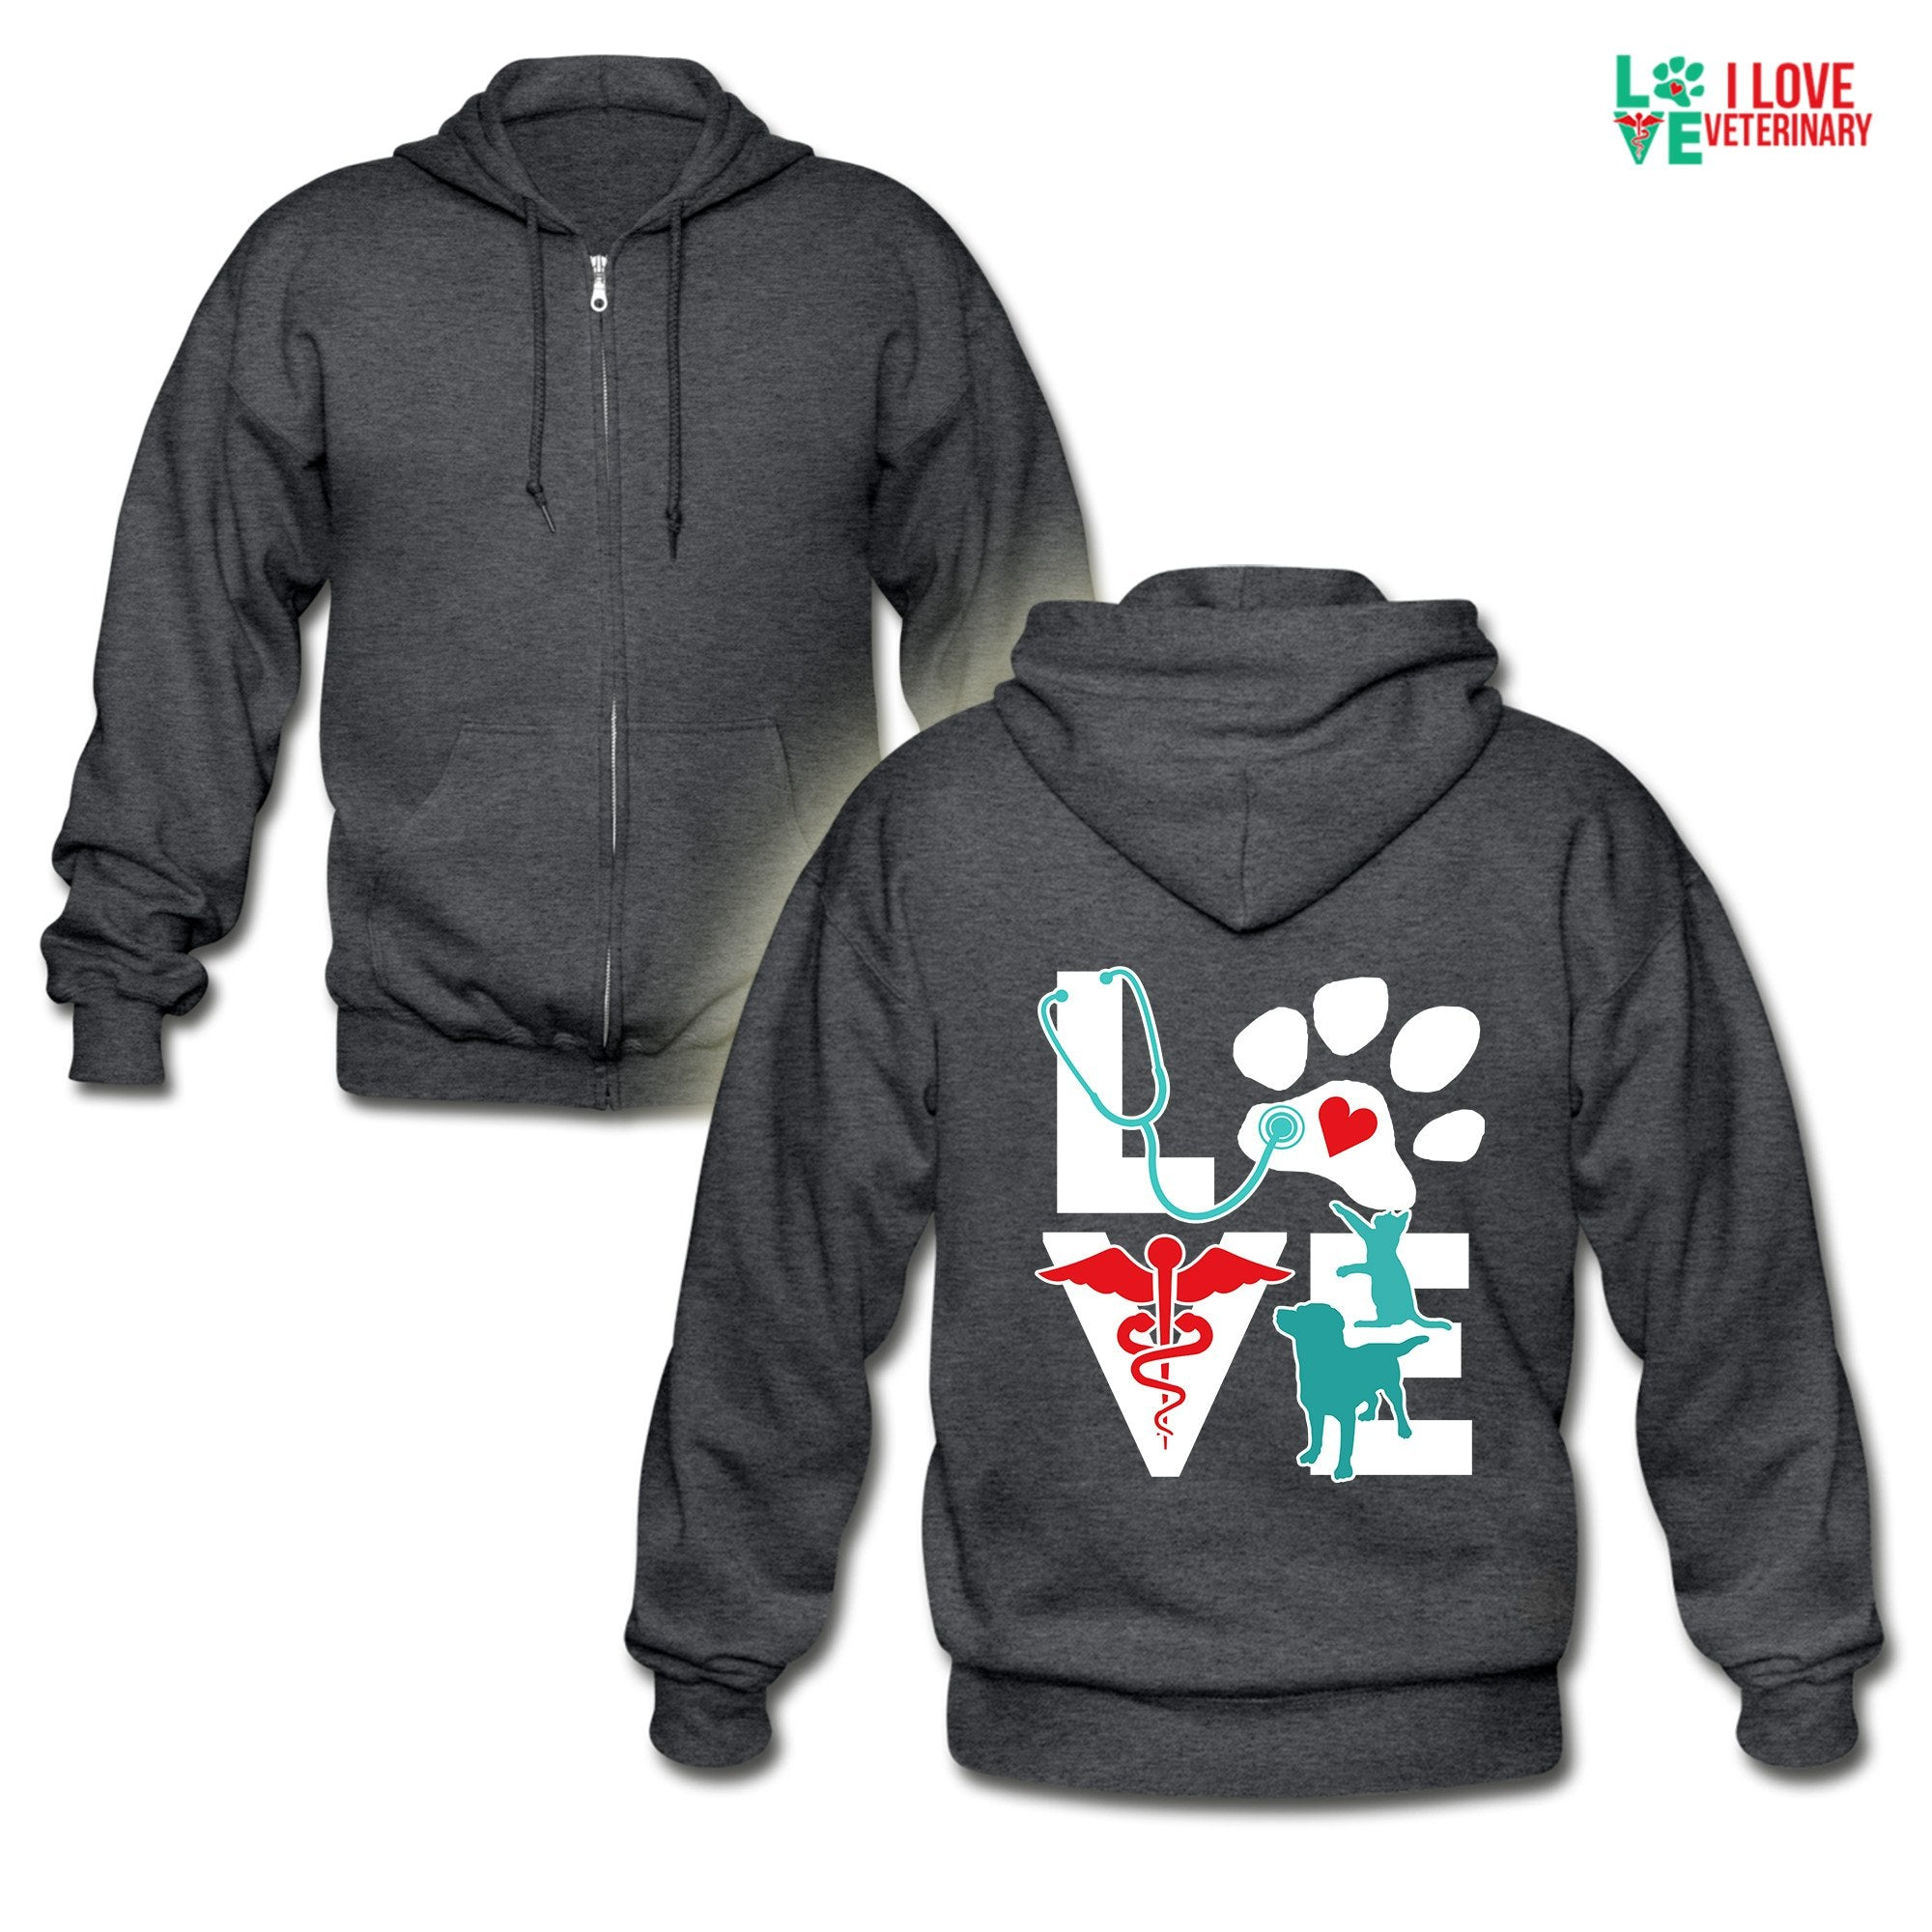 Love Dog and Cat Unisex Zip Hoodie-Gildan Heavy Blend Adult Zip Hoodie-I love Veterinary